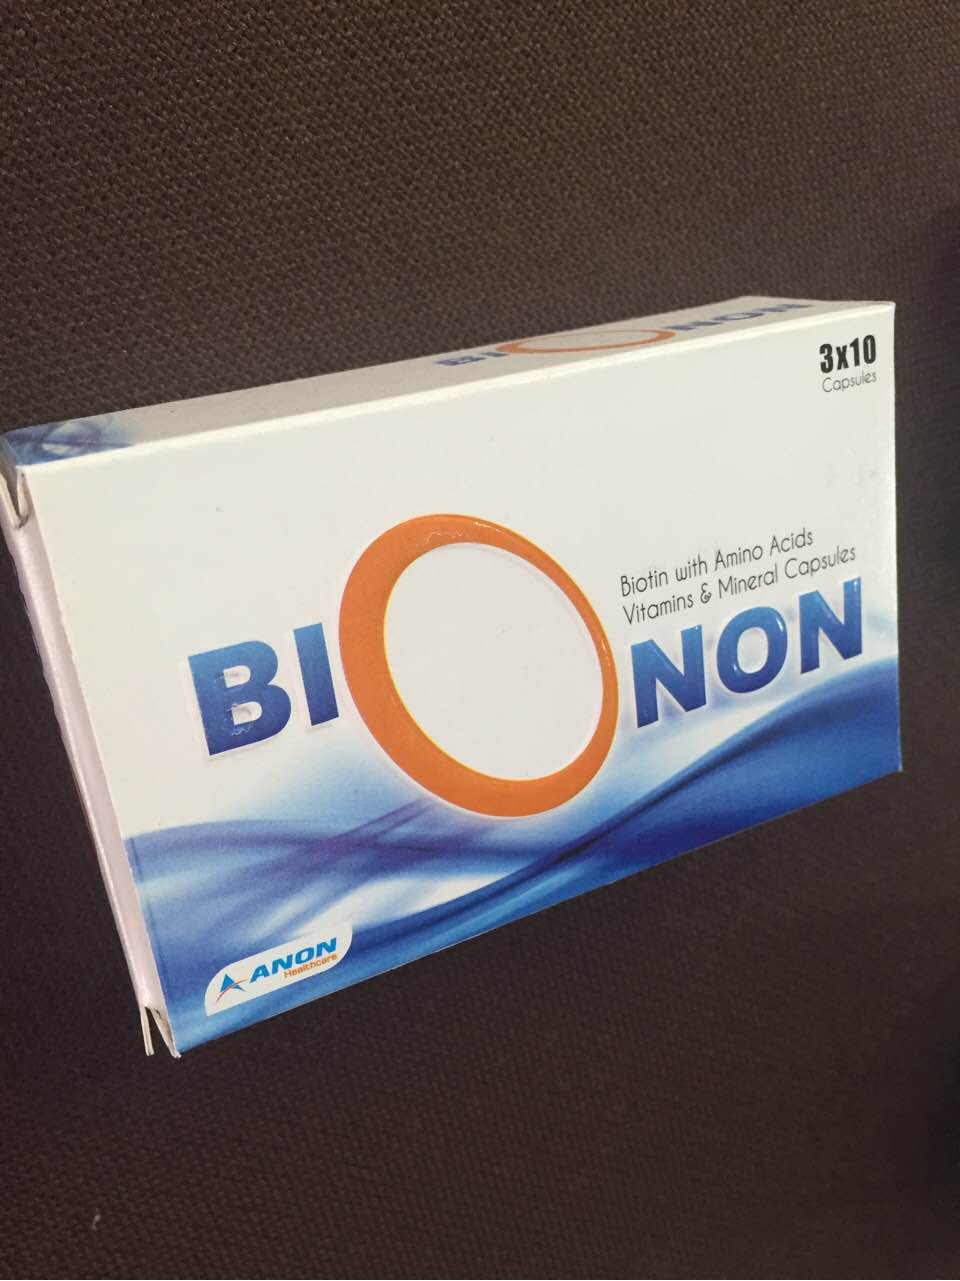 We are manufacturer of Biotin Combination Tablets... we are manufacturer and exporter of Hair Supplement for Better Hair Growth and Lustre... Zeon Biotech Zeon Group Of Companies. Contact: 9067166212 Email: zeon.biotech@gmail.com and info@gmail.com